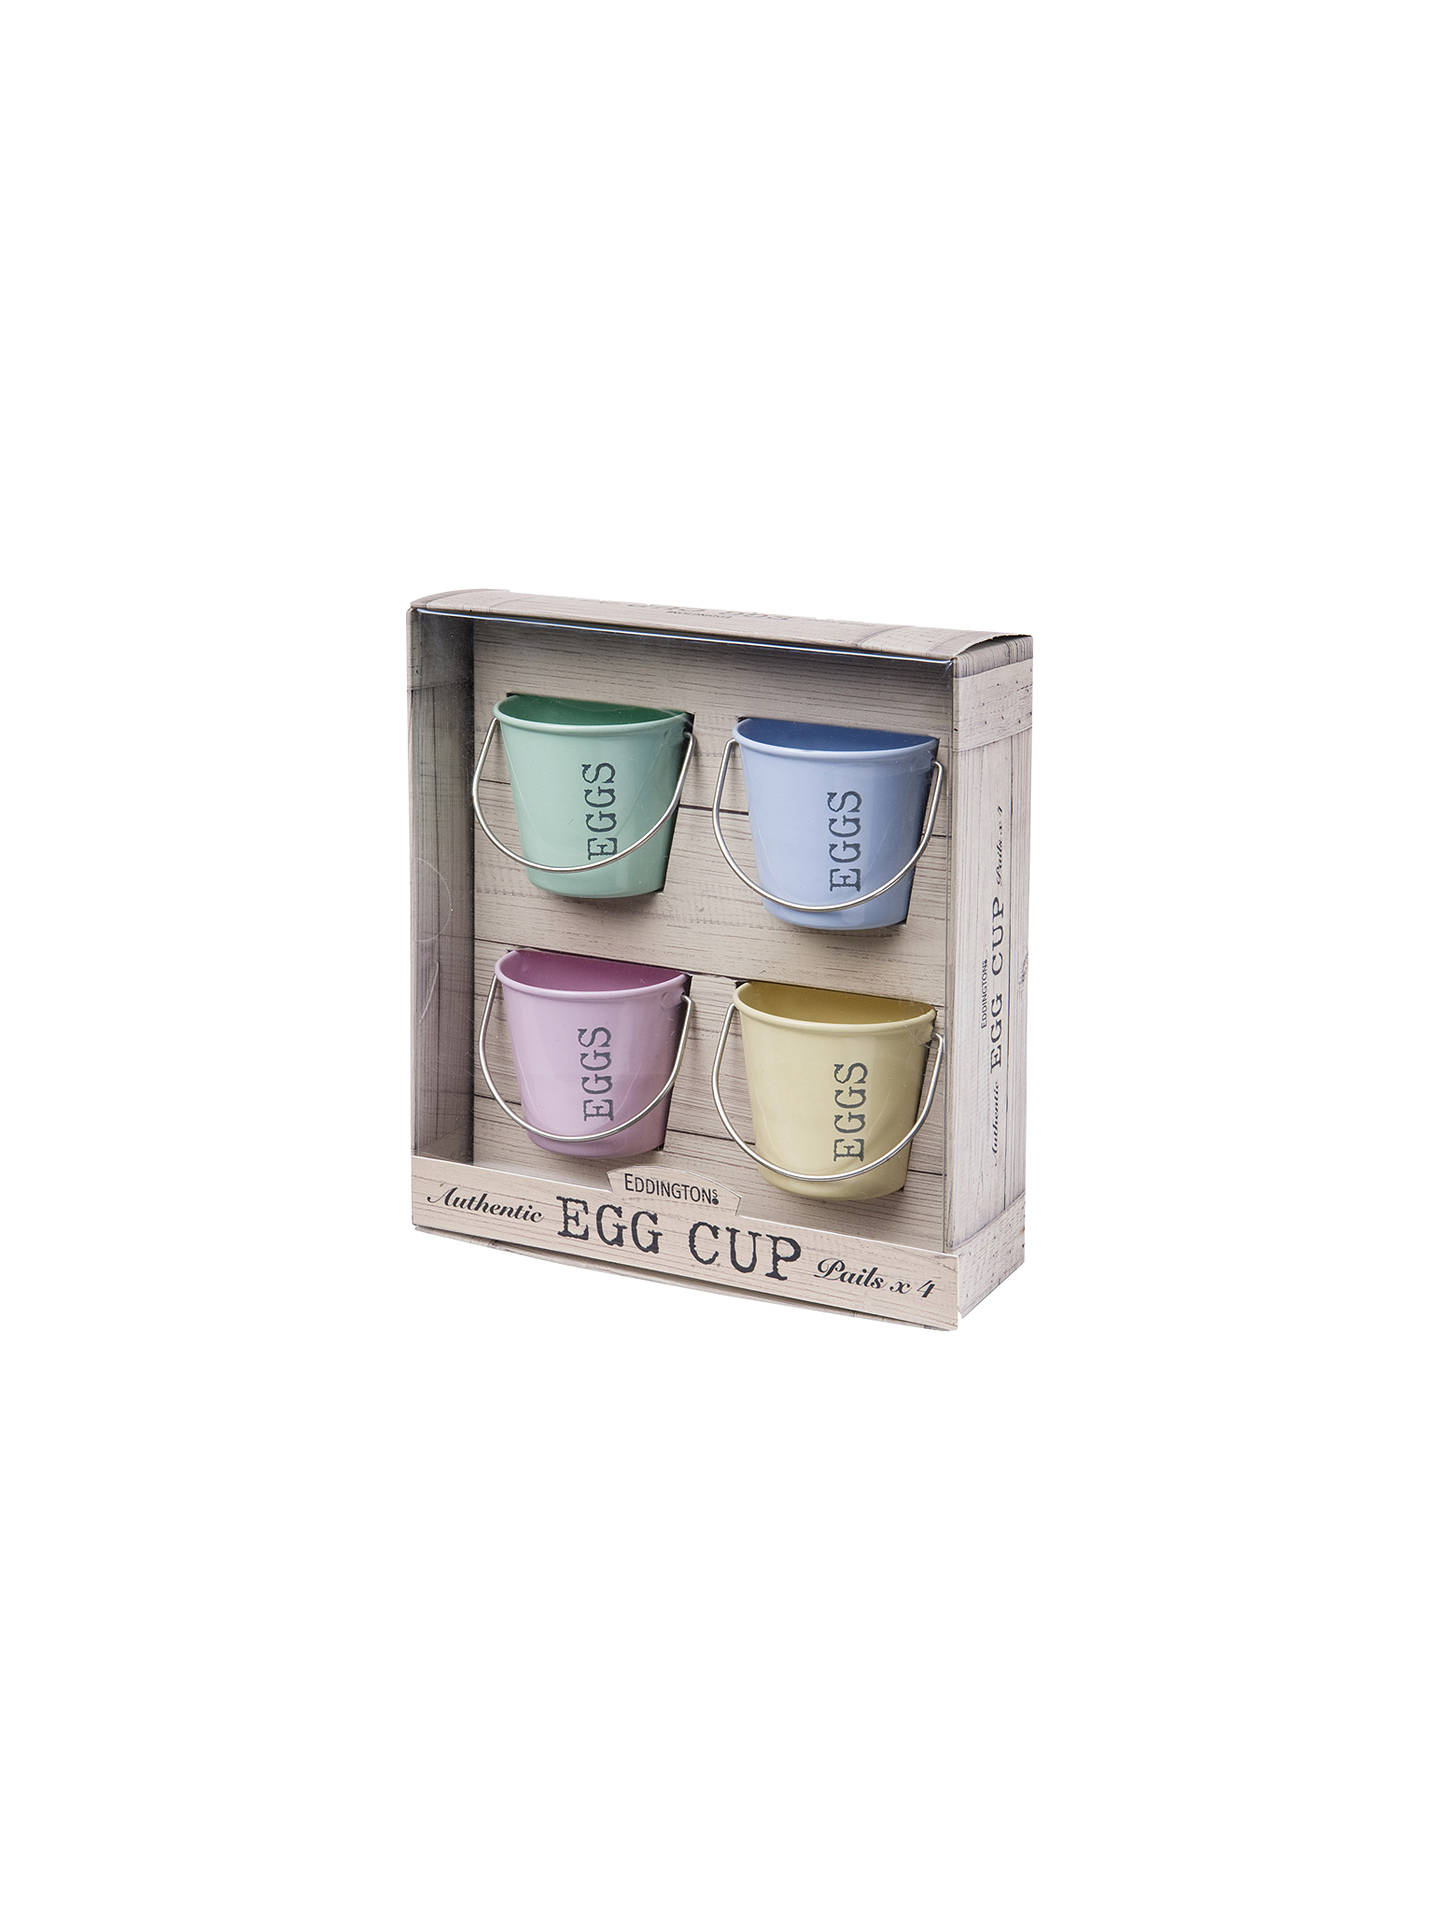 Buy Eddingtons Pastel Egg Cup Buckets, Set of 4 Online at johnlewis.com